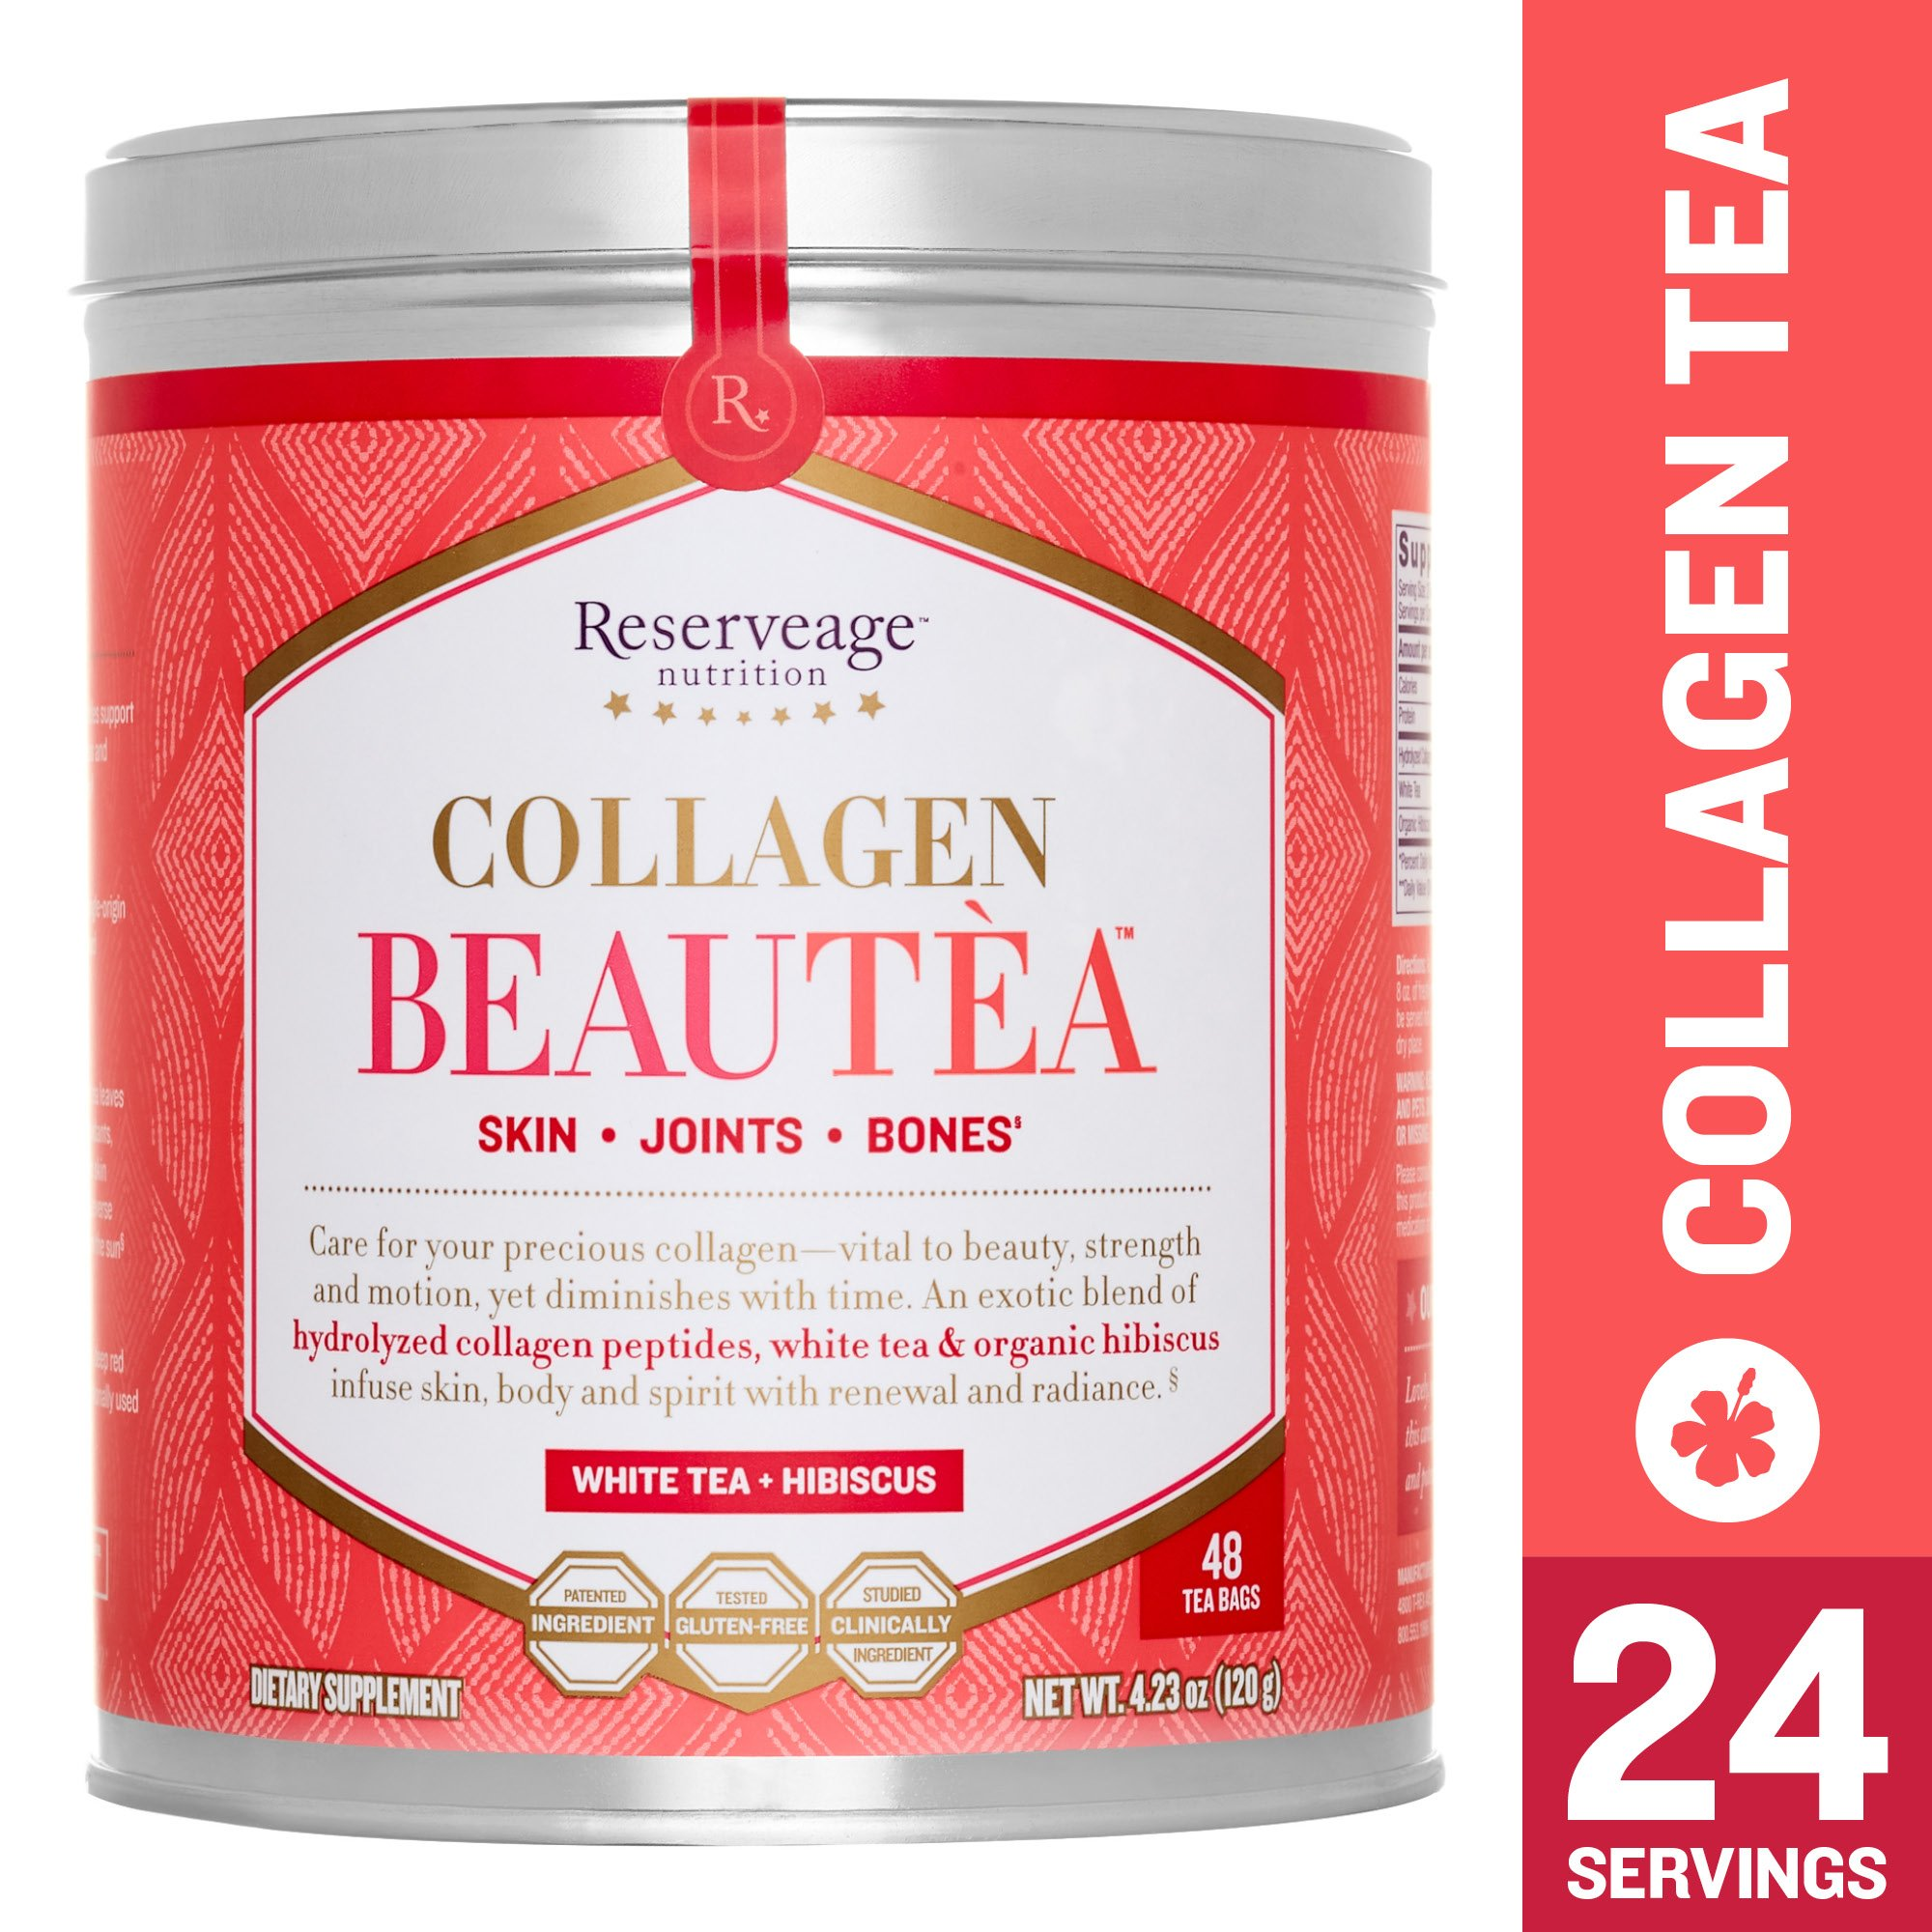 Reserveage - Collagen Beautea, Botanical Support for Joints, Bones, and to Help Reduce Wrinkles for Youthful Skin with Collagen Peptides, White Tea + Hibiscus, 4.23 oz (24 Servings)